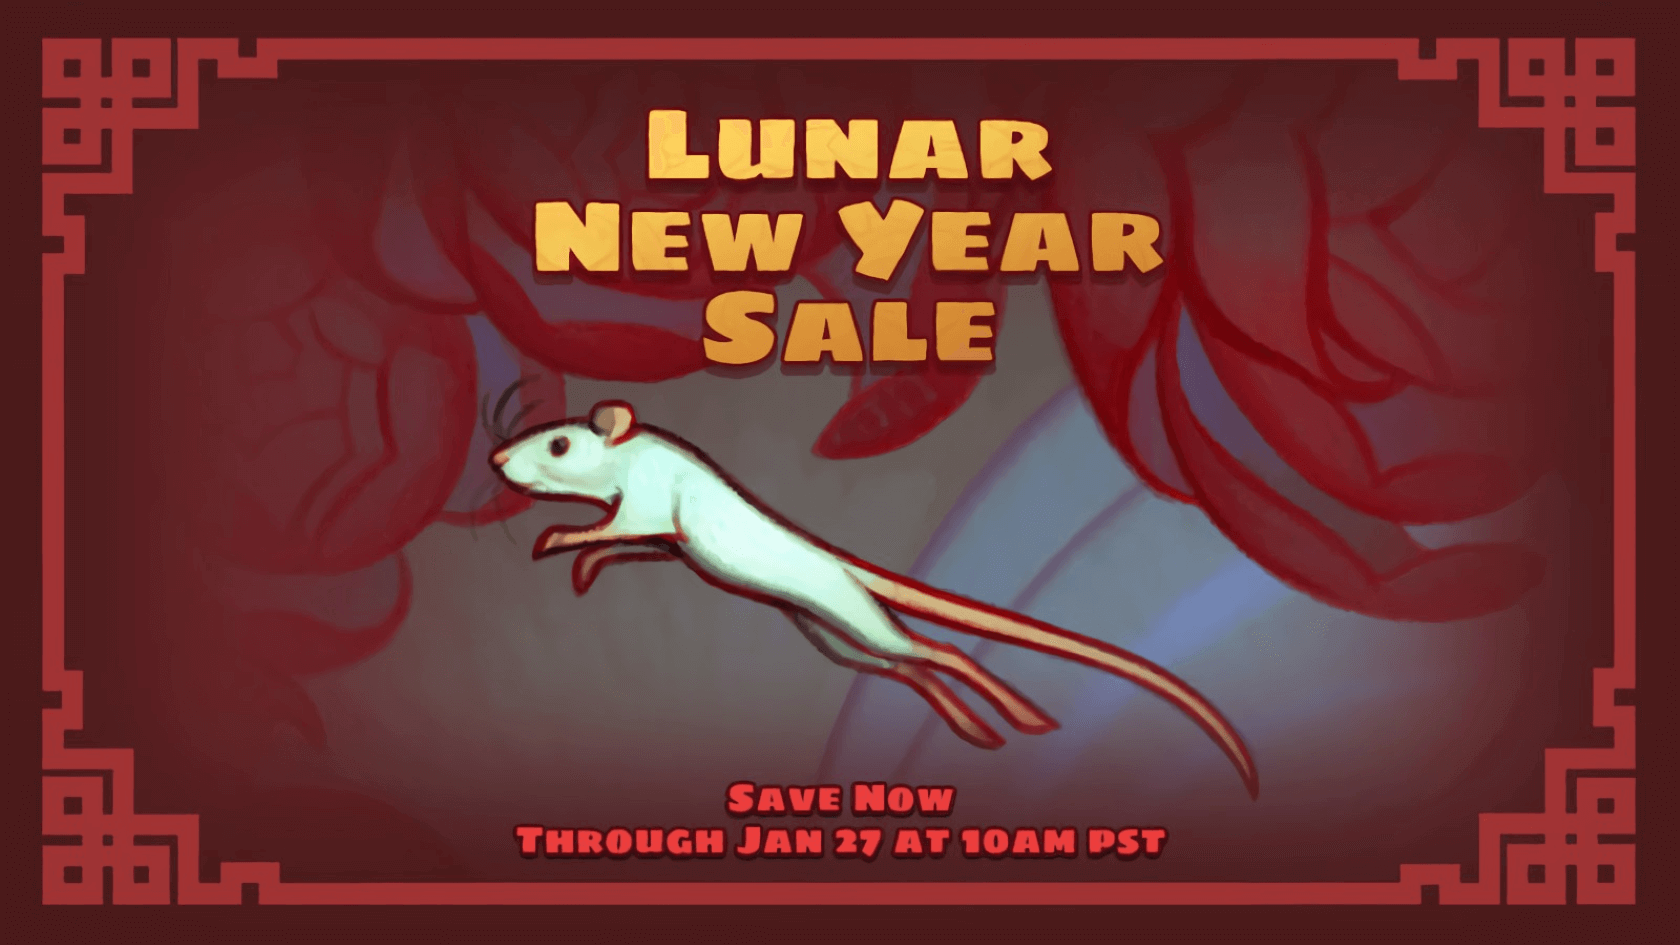 Steam celebrates the Year of the Rat with its latest Lunar New Year Sale